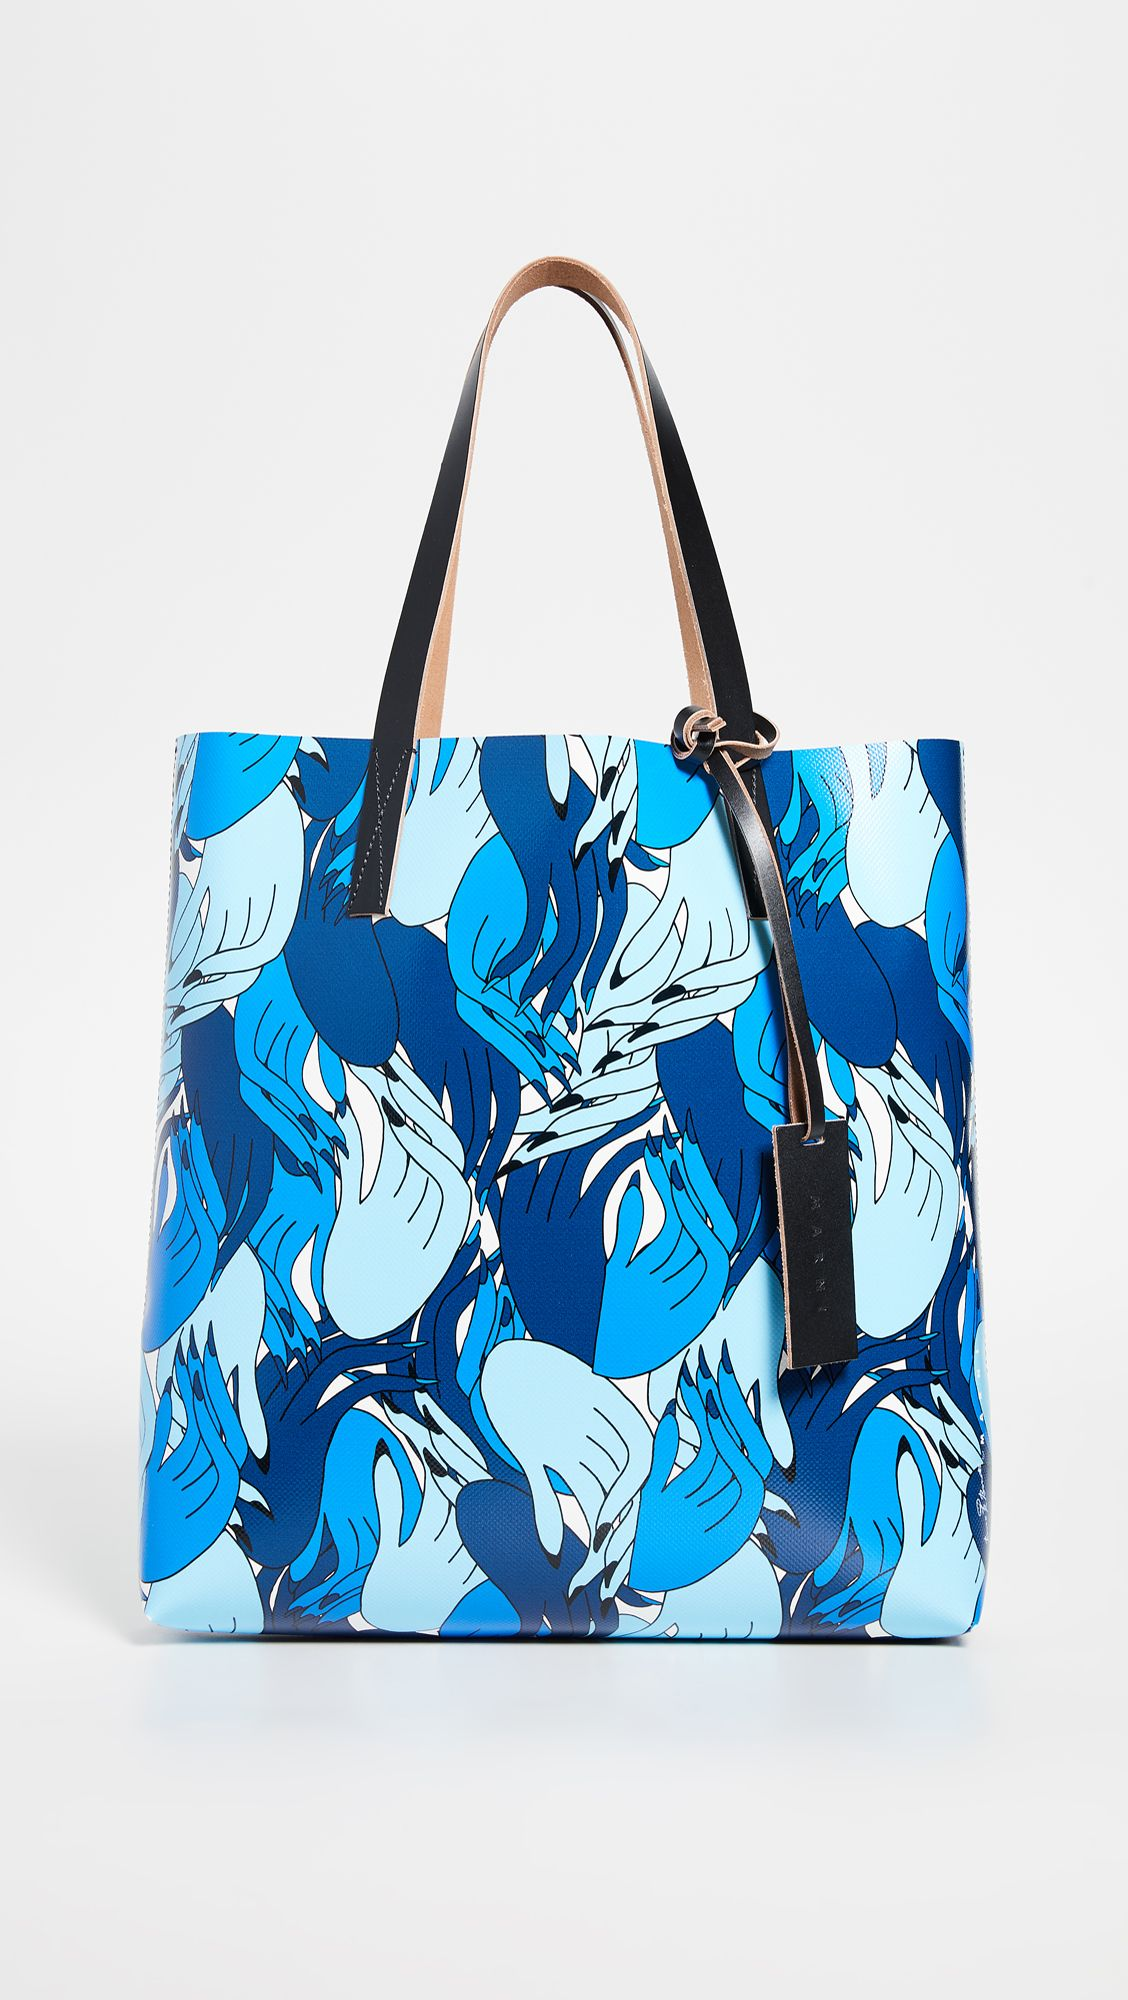 Marni PVC Tote Bag SAVE UP TO 40 SURPRISE SALE